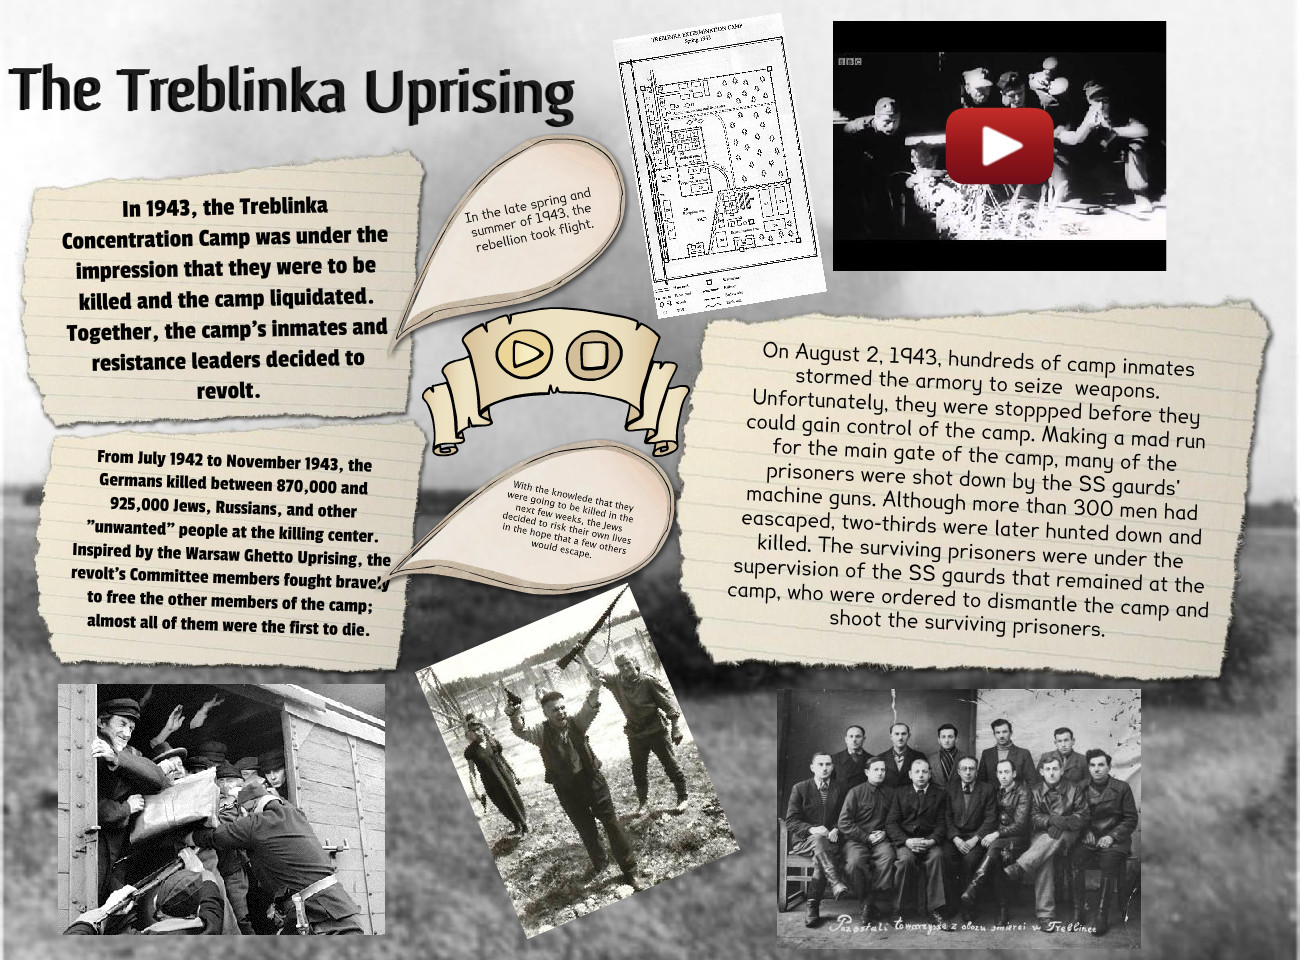 The Treblinka Uprising